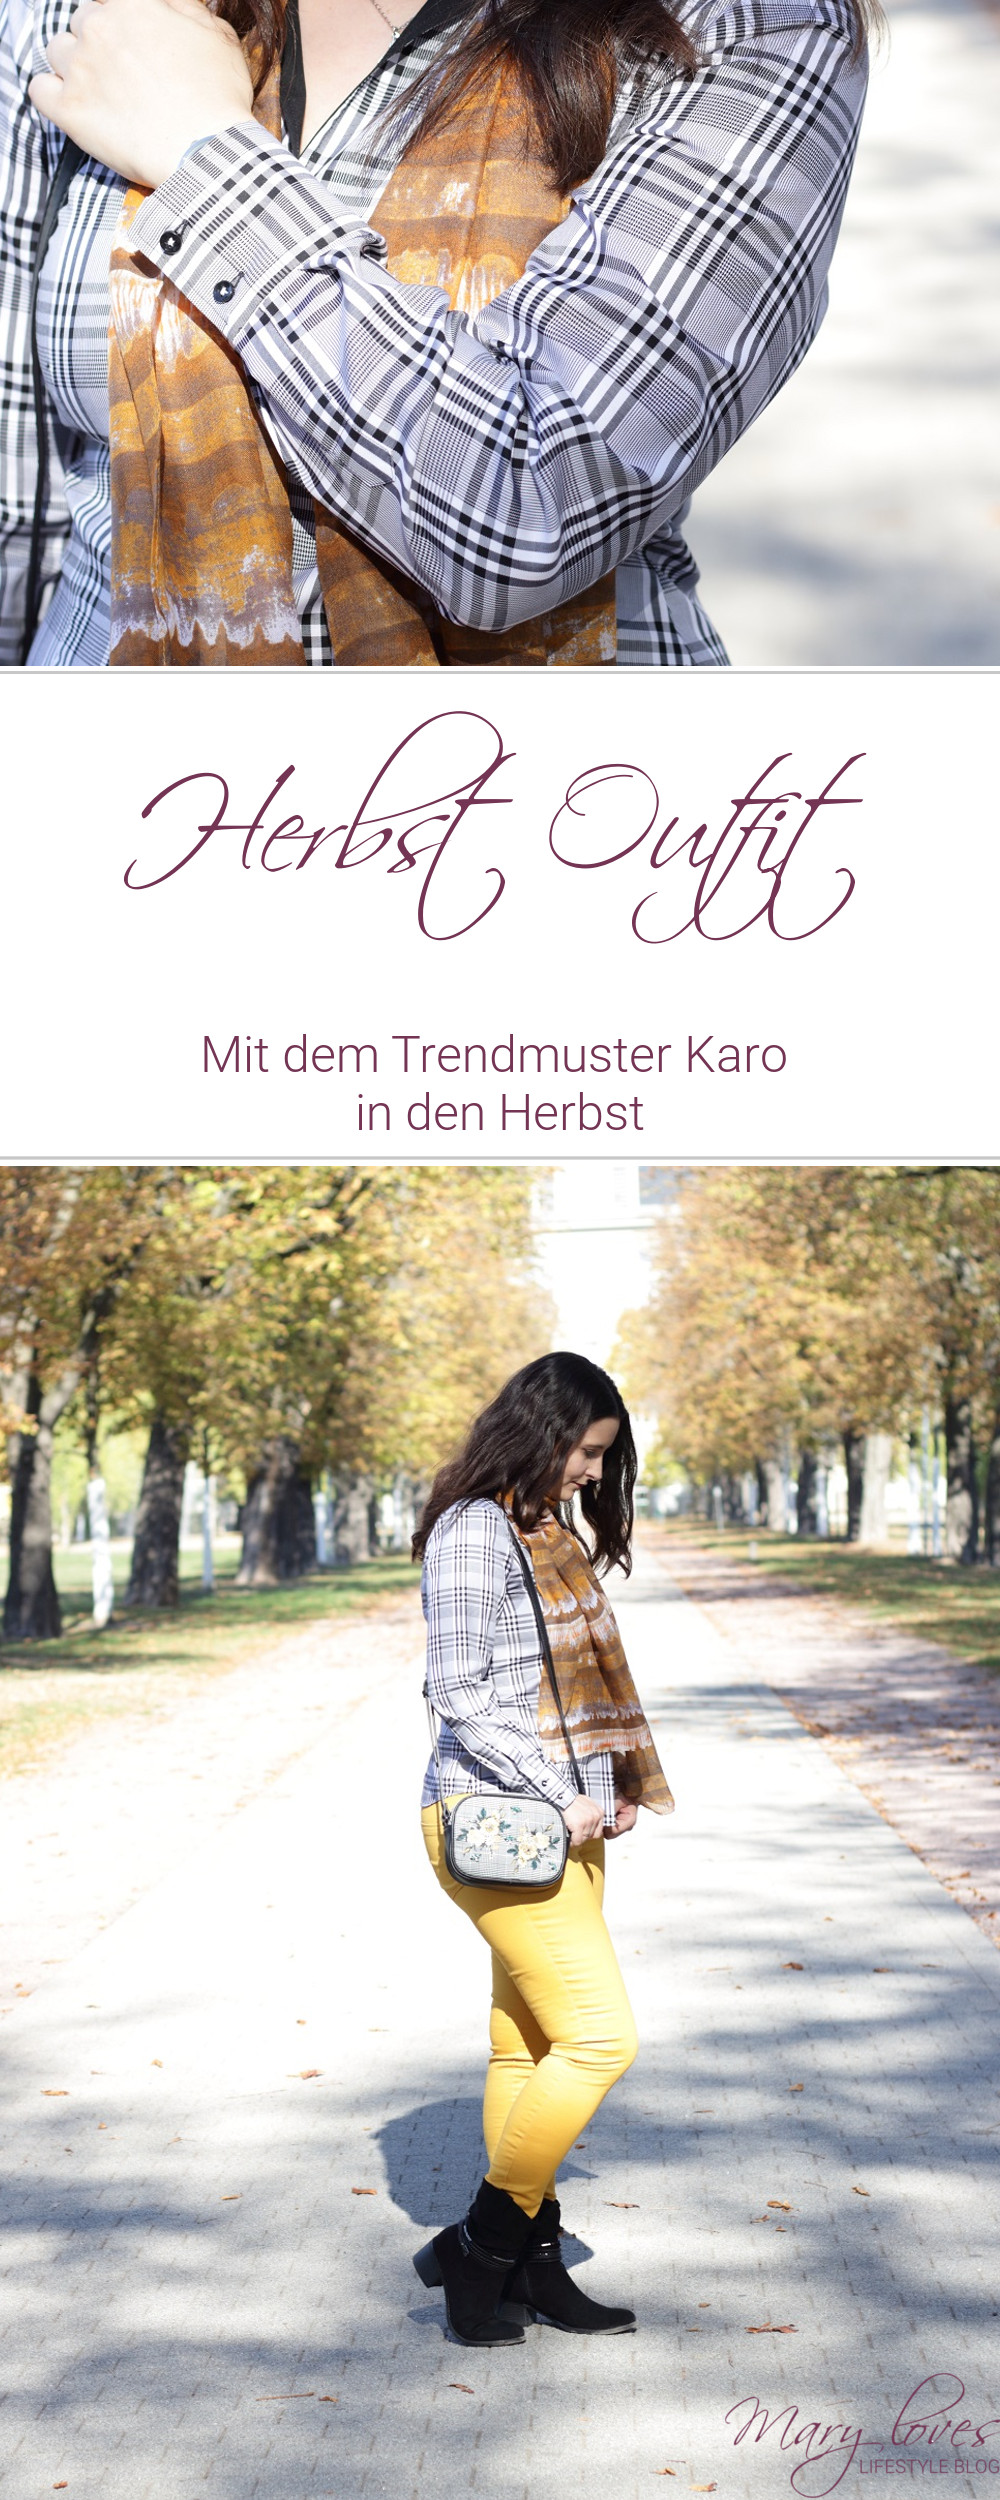 [Anzeige] Mein Herbstoutfit mit dem Trendmuster Karo - #karo #karomuster #herbstoutfit #herbsttrend #eterna #bluse #karobluse #outfitinspiration #outfit #herbstlook #muster #trendmuster